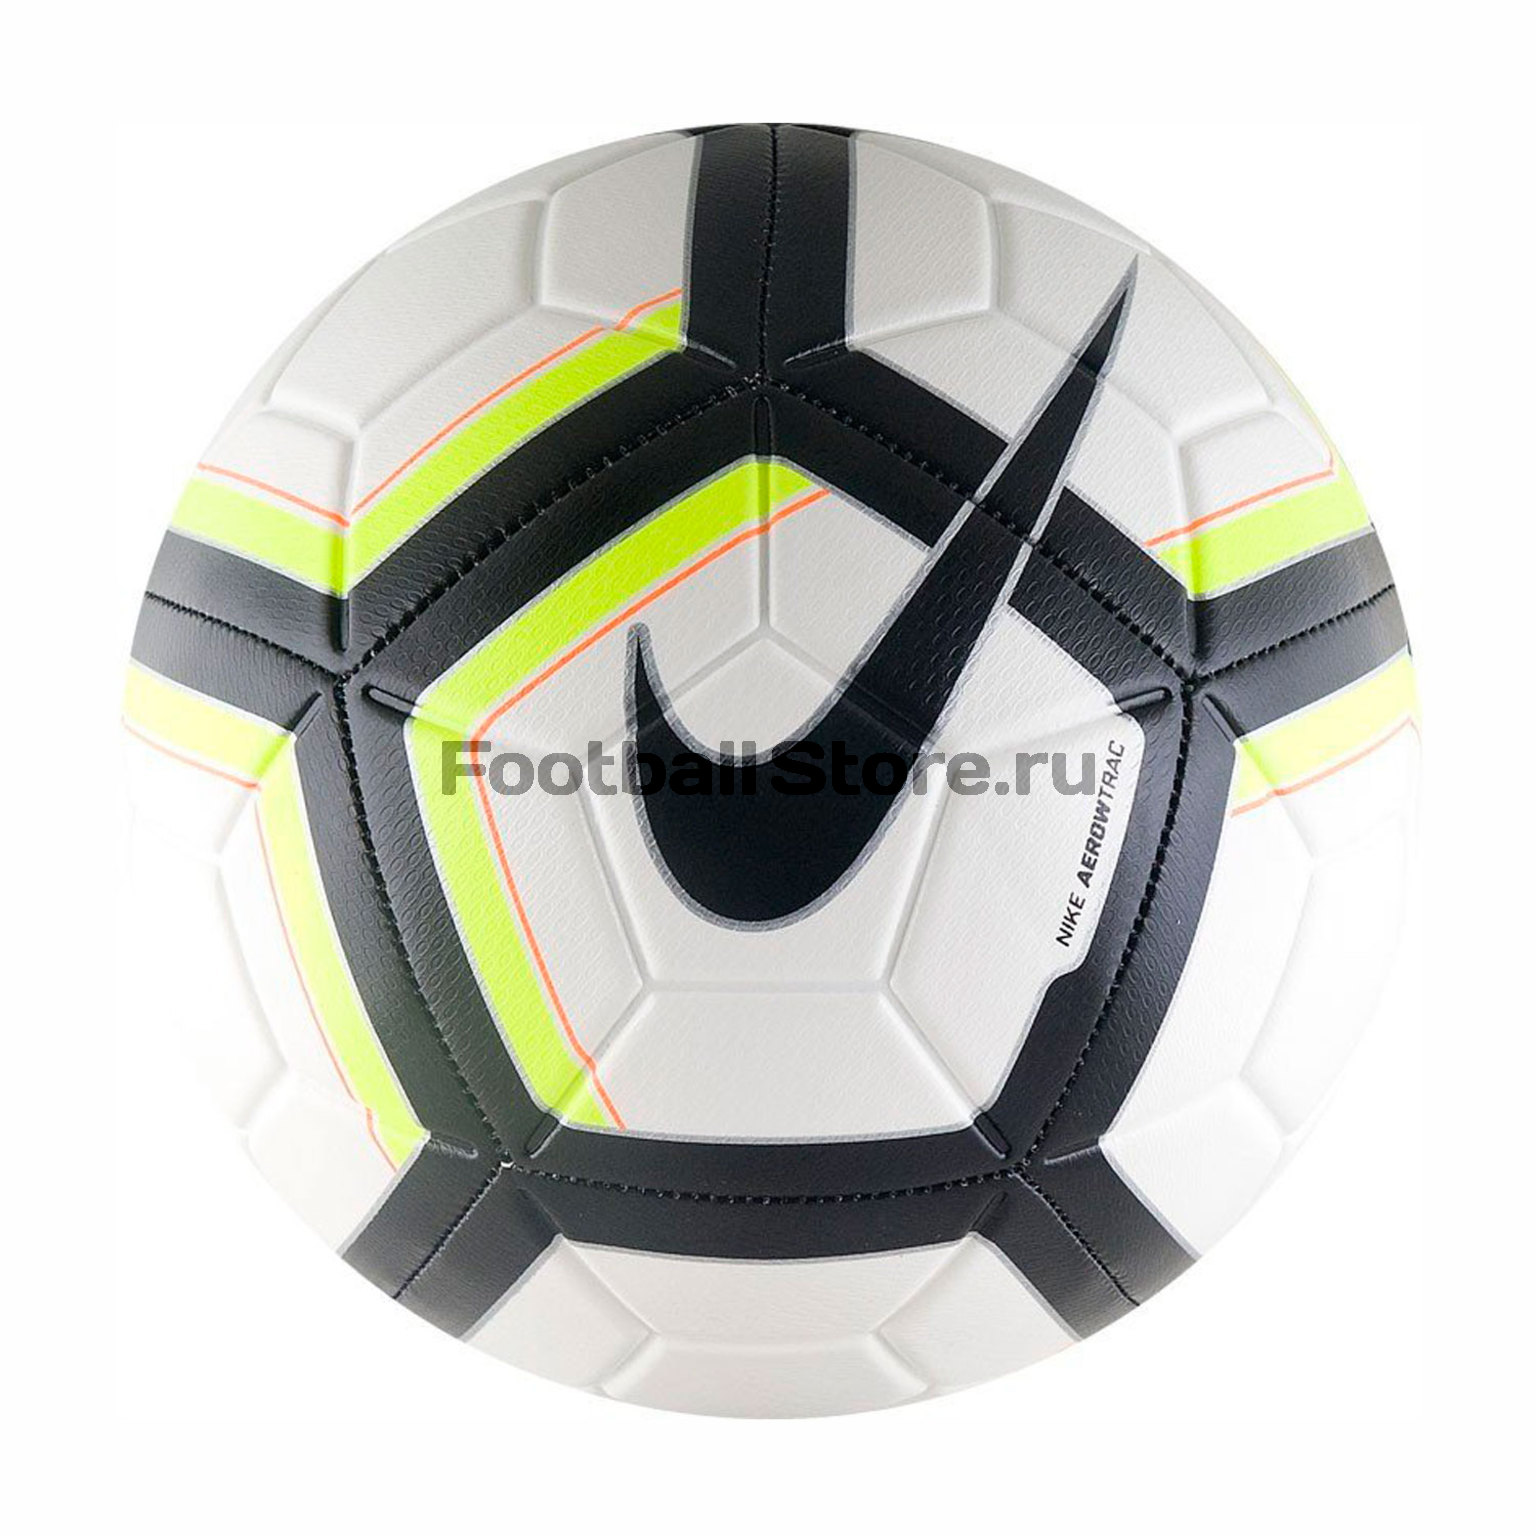 Футбольный мяч Nike NK Strike Team SC3176-100 мяч nike nk ptch train sc3101 702